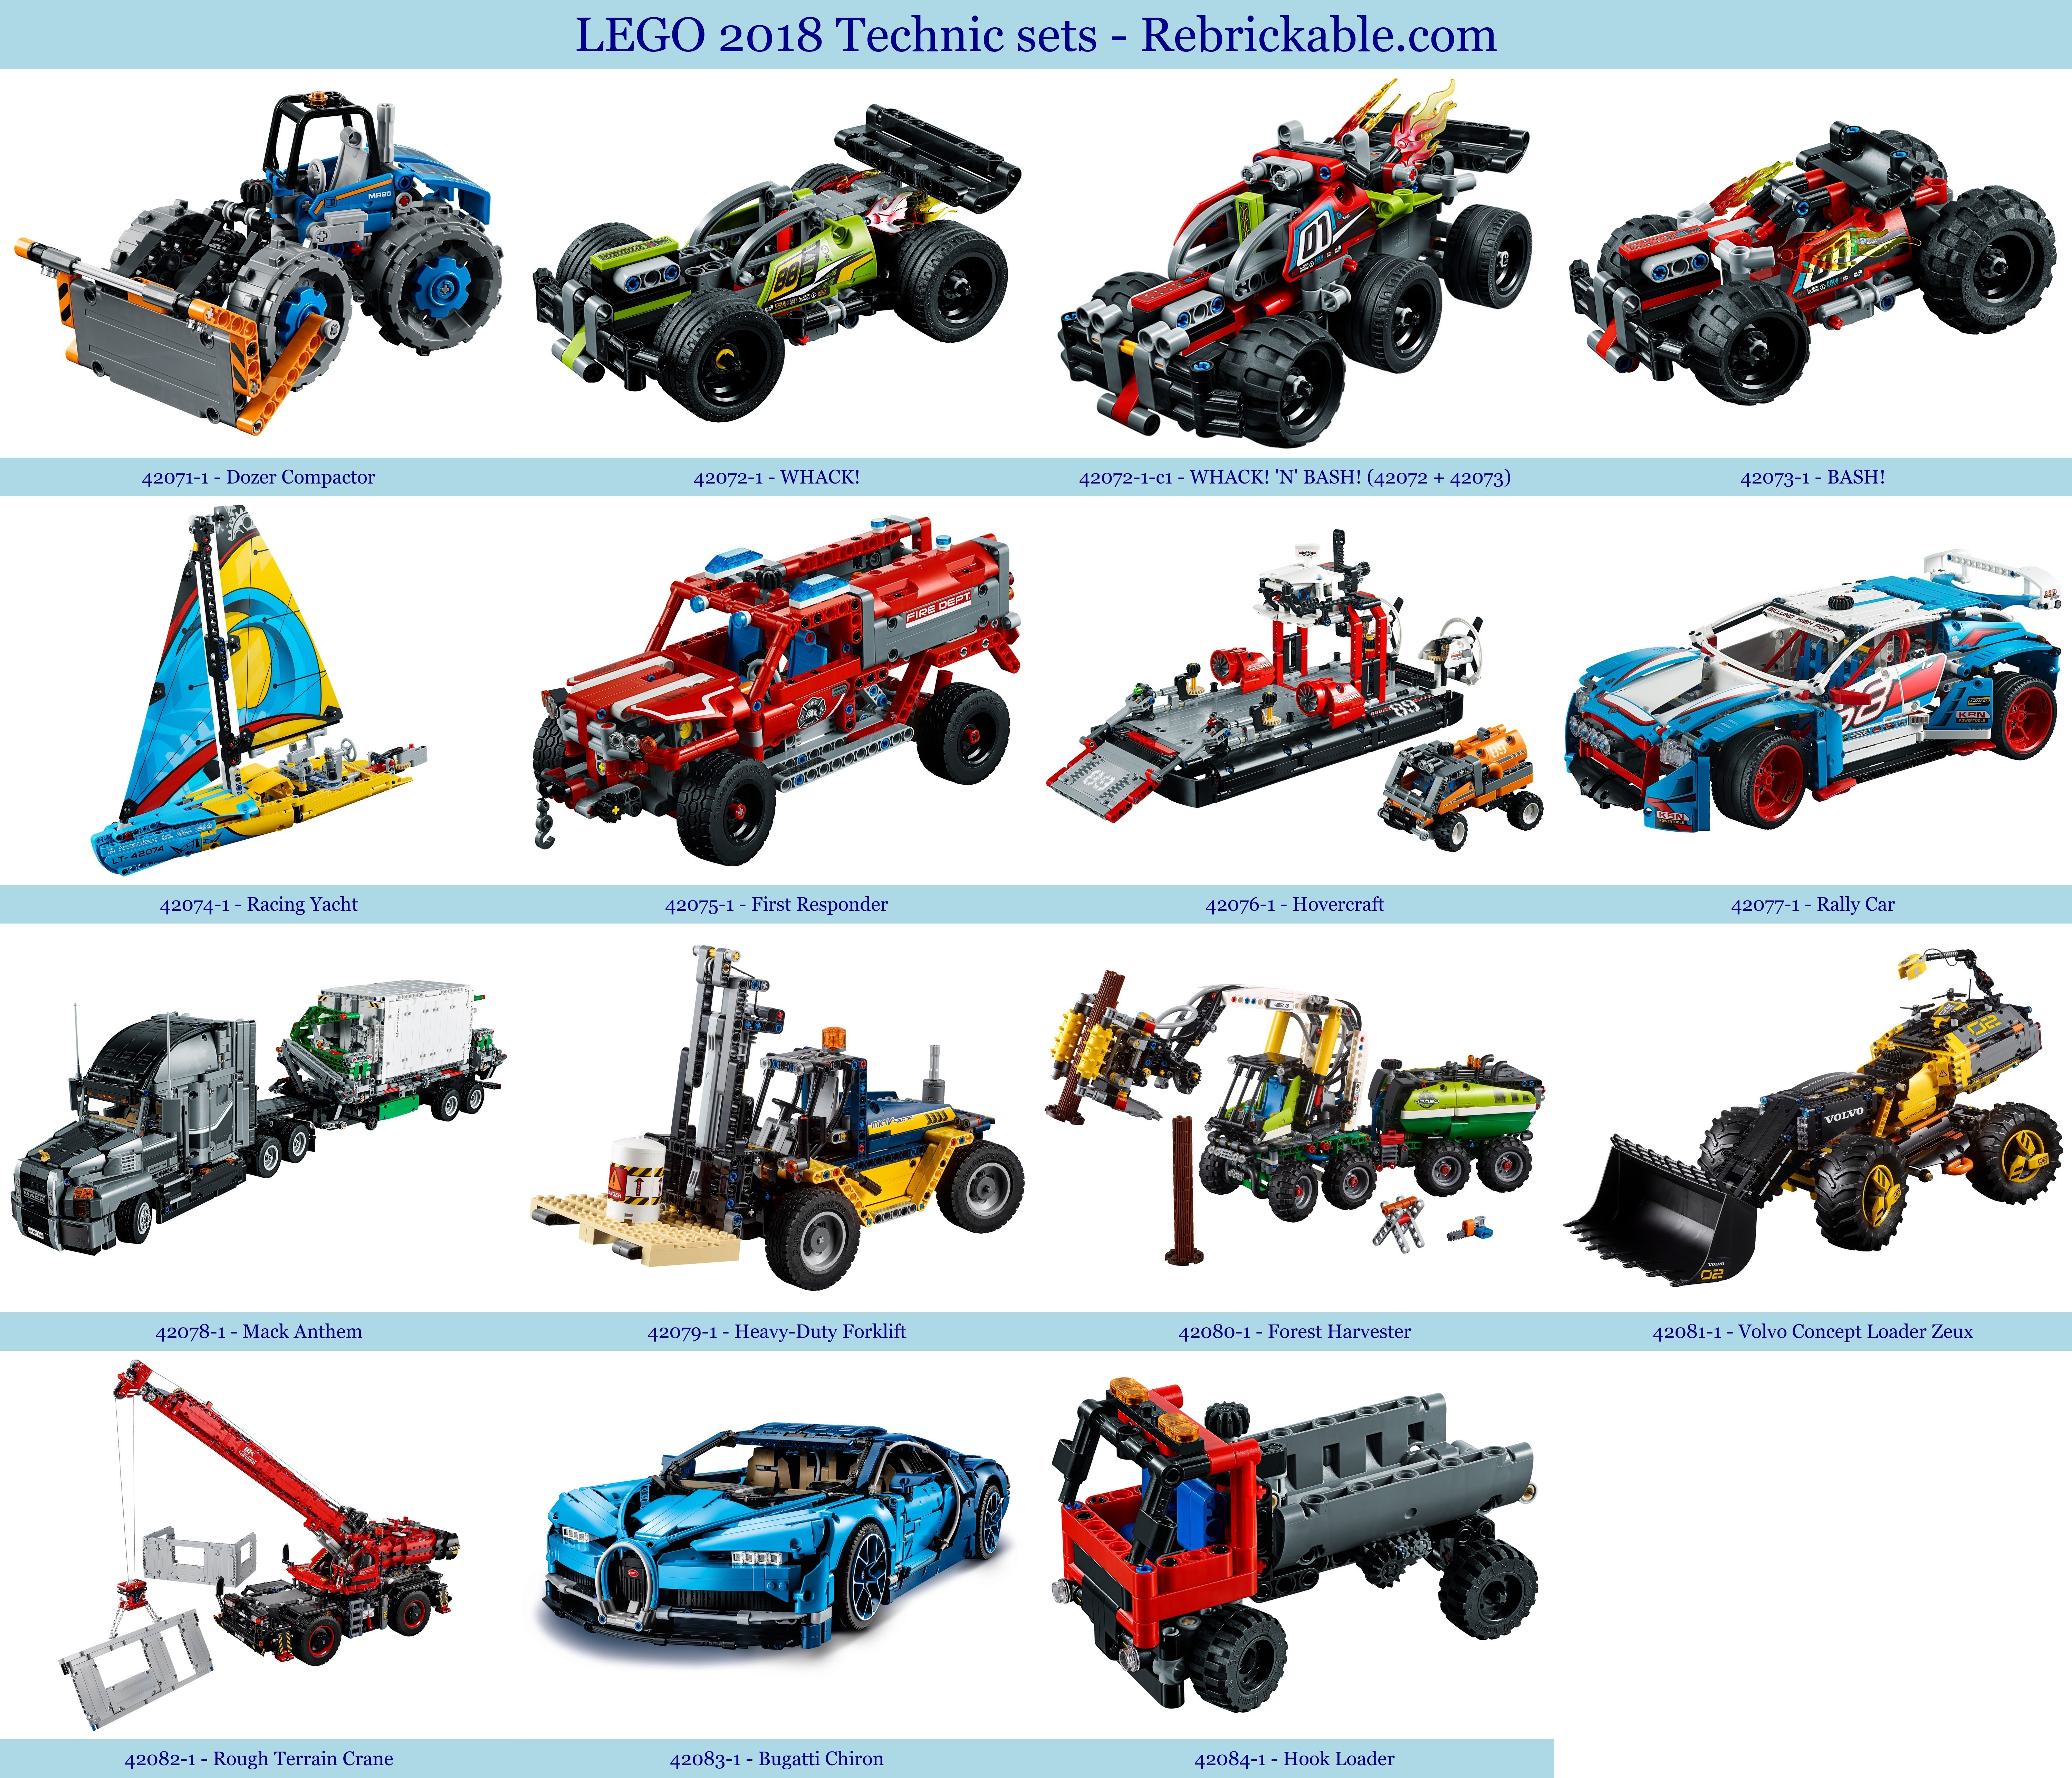 New 2018 Lego Sets Rebrickable Build With Lego